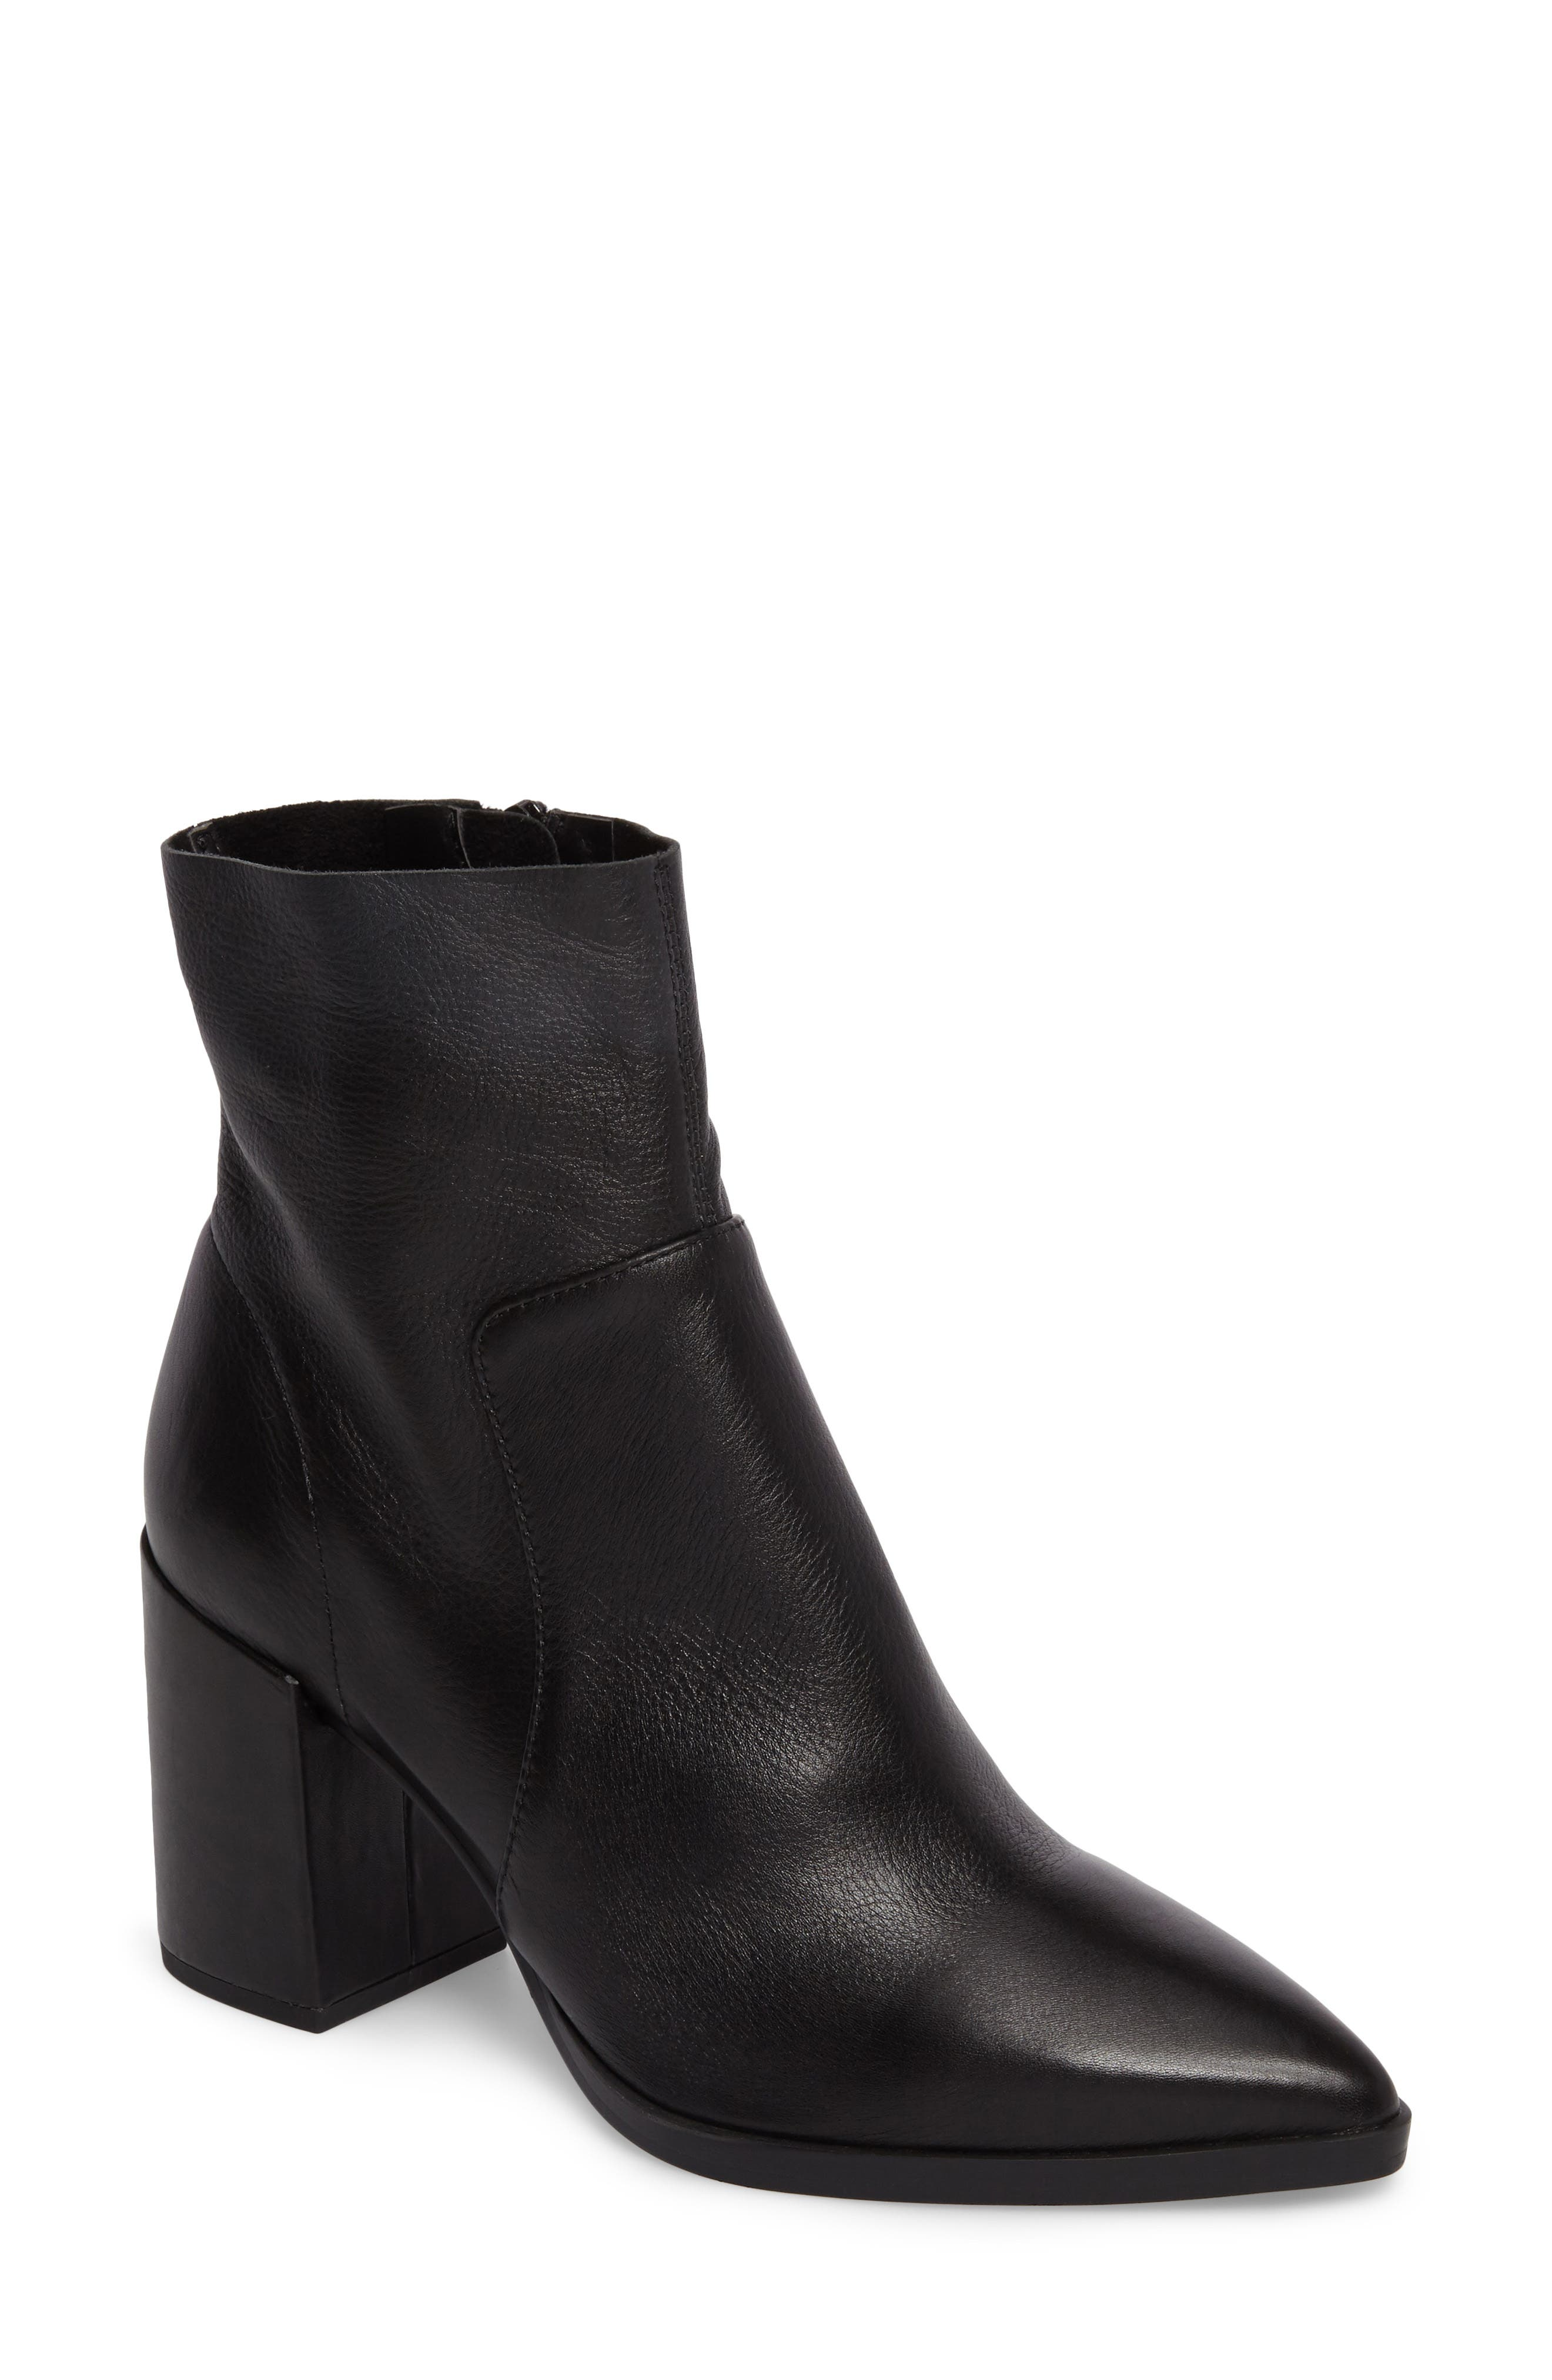 Brazen Pointy Toe Bootie,                         Main,                         color, BLACK LEATHER